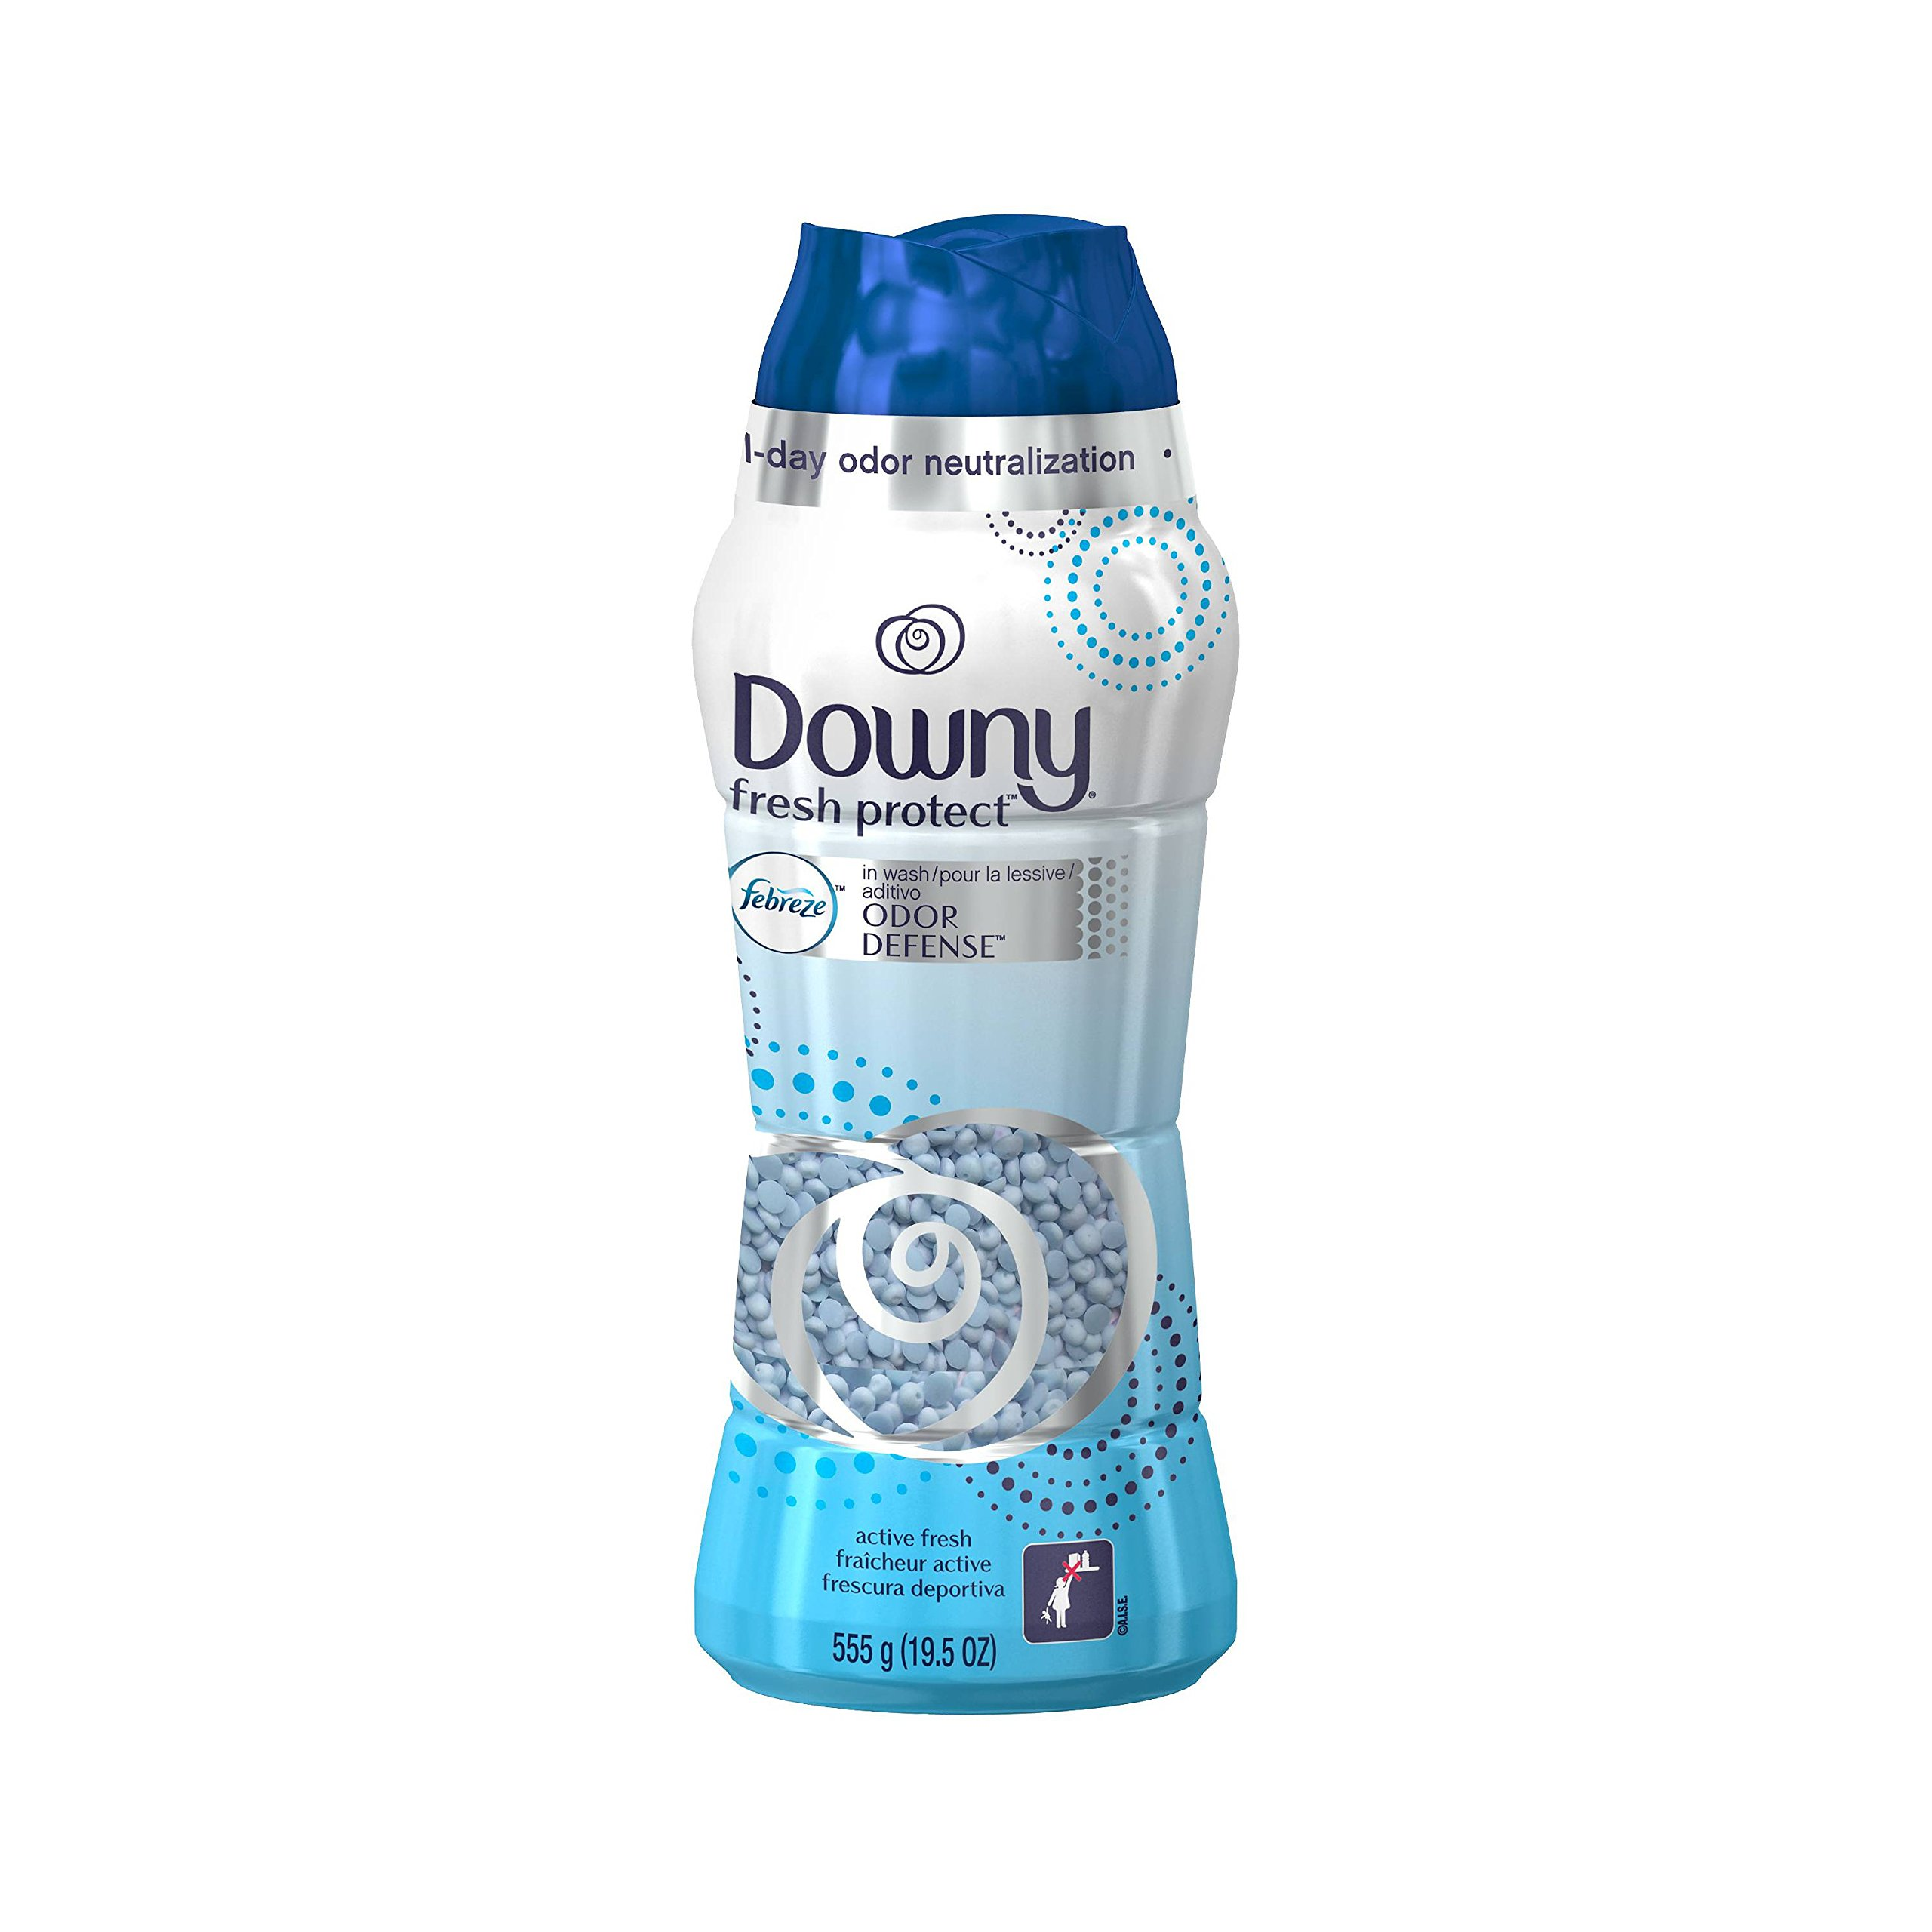 Downy Fresh Protect In-Wash Odor Shield Laundry Beads - Active Fresh Scent - 19.5 oz (pack of 1)